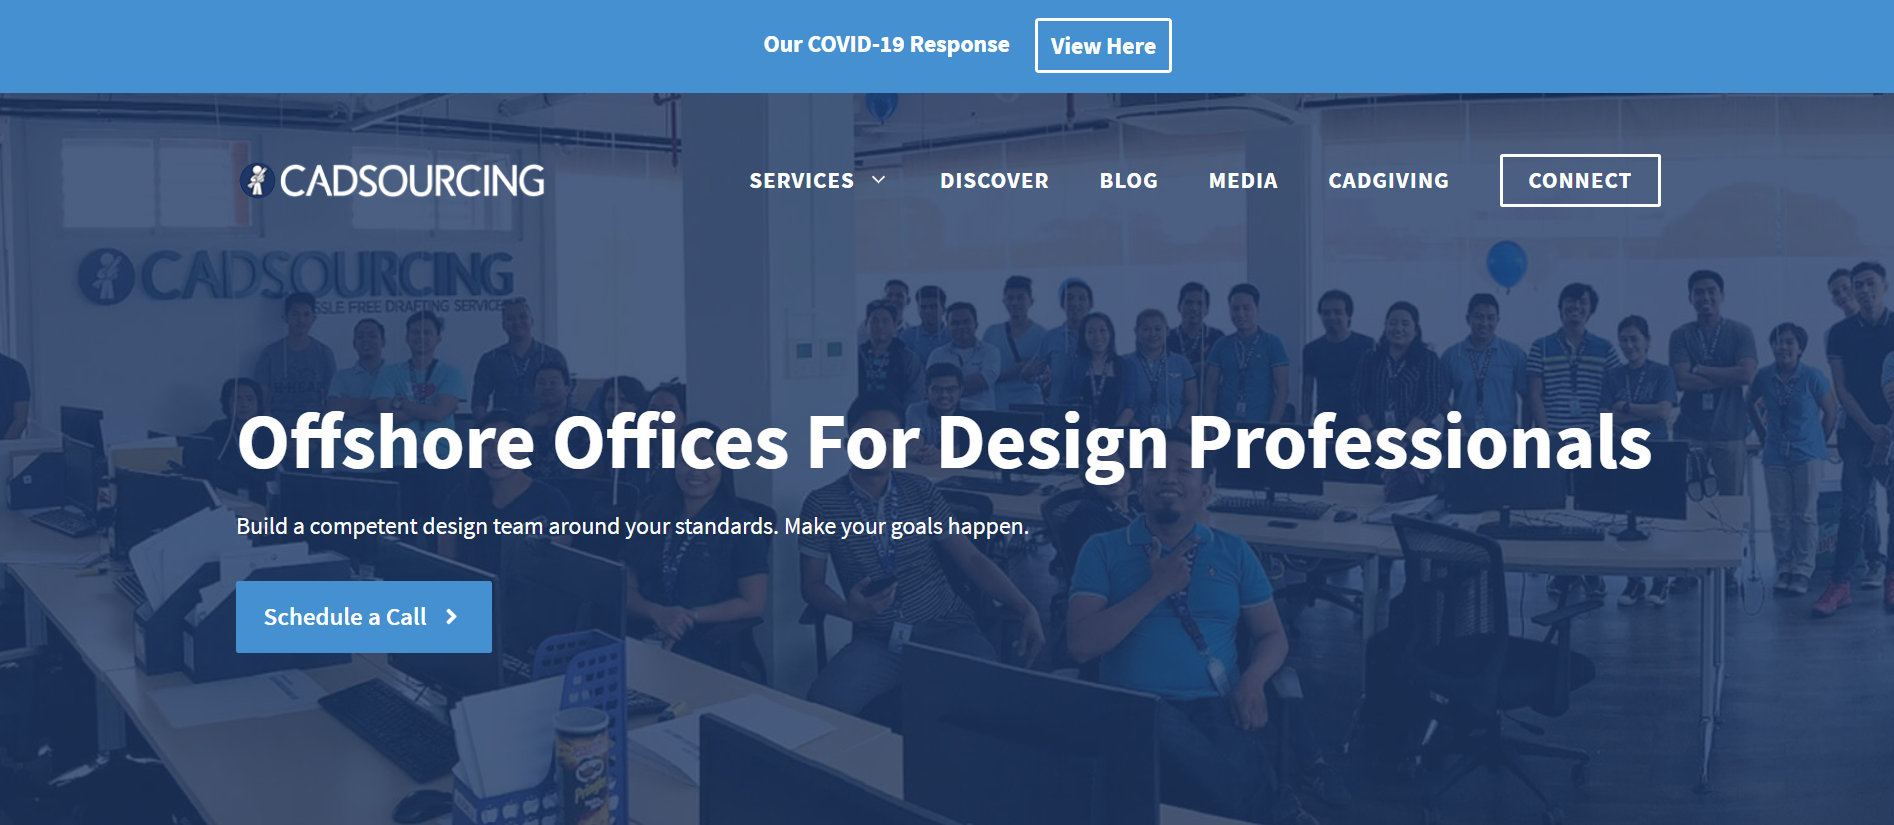 cadsourcing site features engineering process outsourcing teams